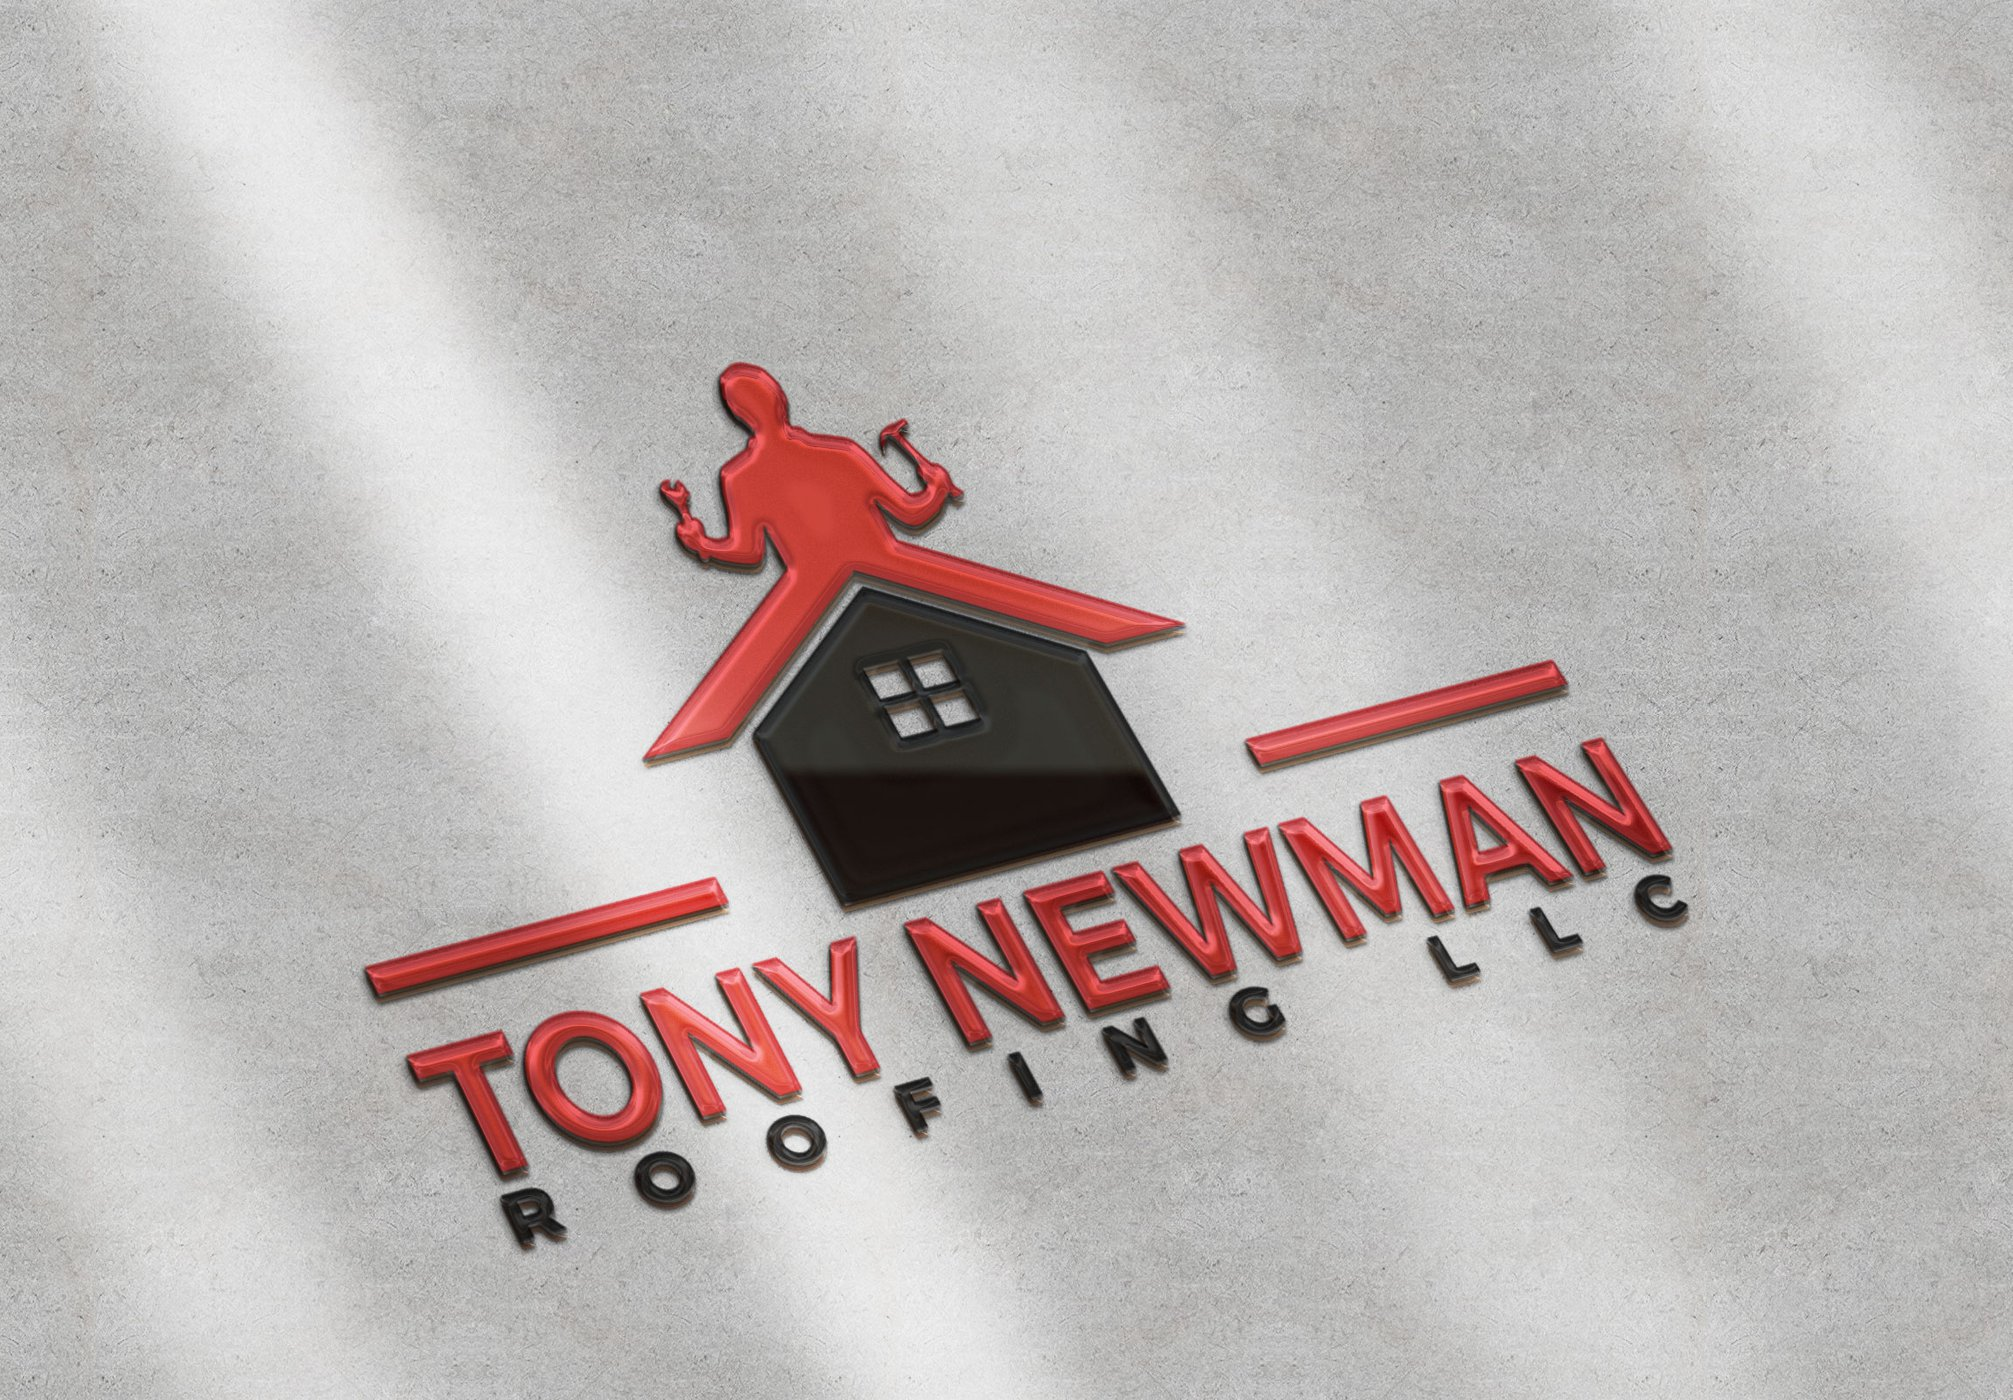 Tony Newman Roofing | Roofing Contractor | Roofs and More!